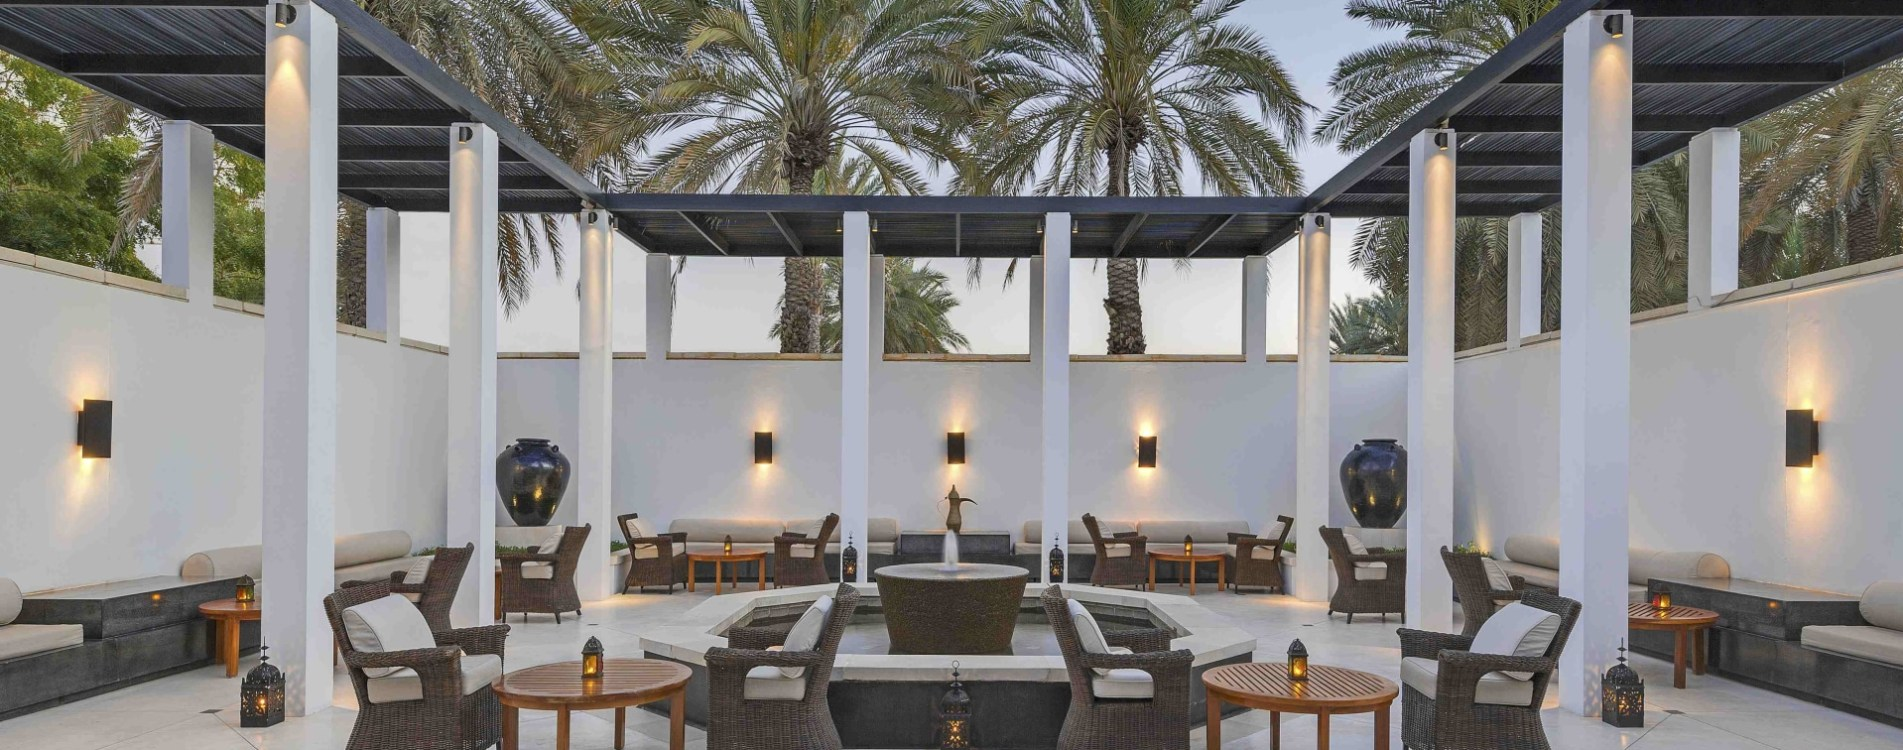 The-Chedi-Muscat-Dining-The-Shisha-Courtyard-Oman.jpg